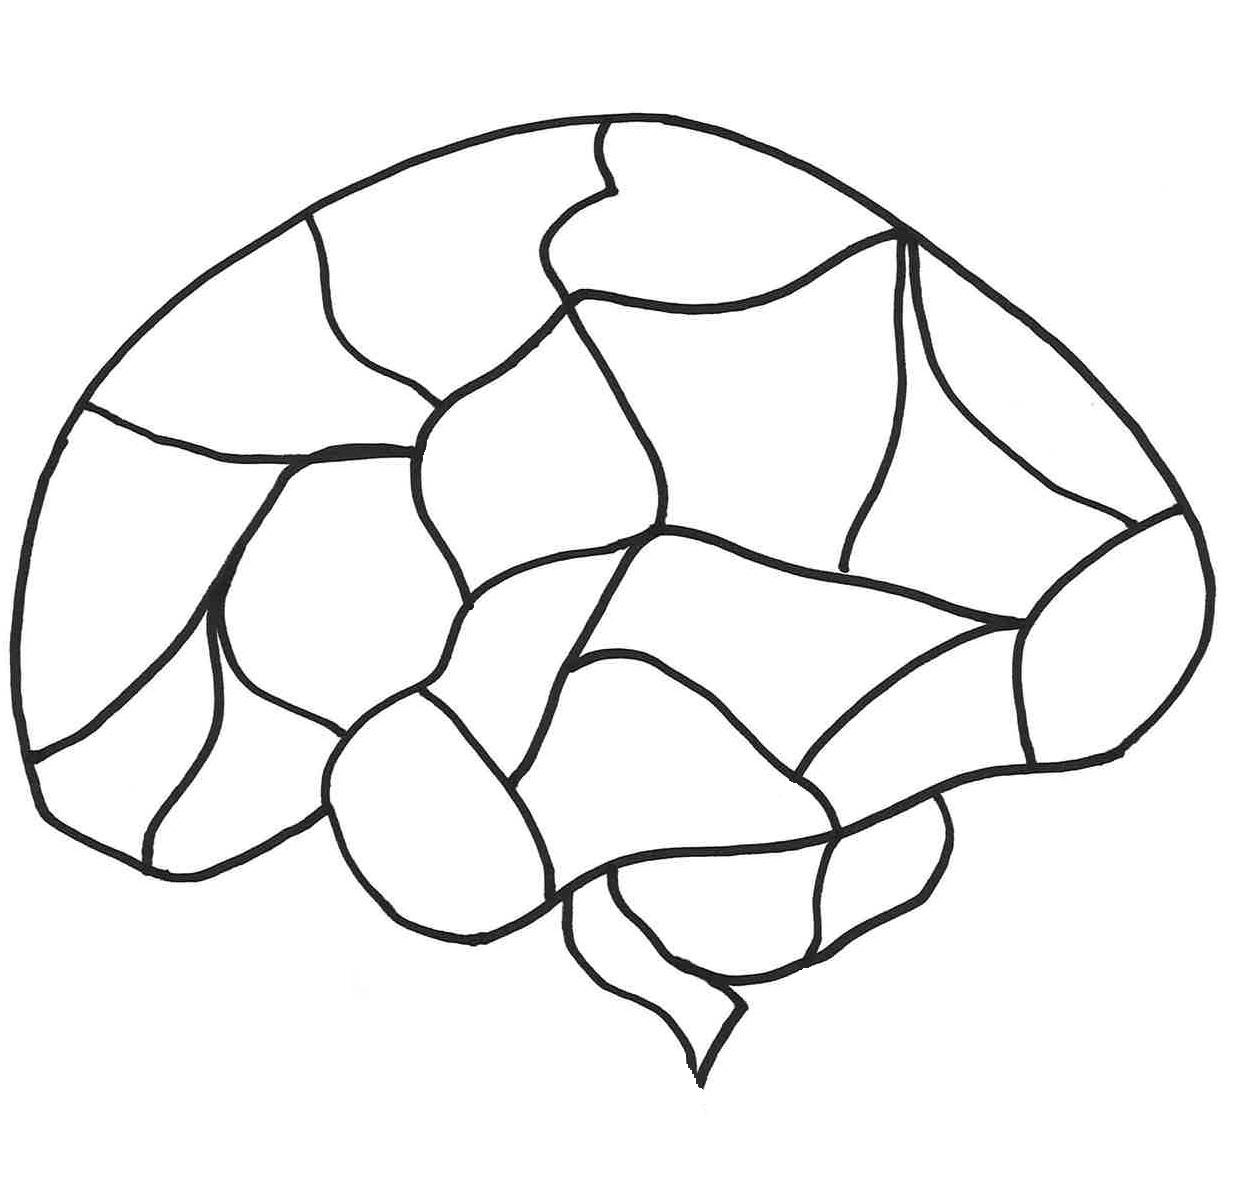 Brain filled black clipart clipart royalty free download Free Fill Cliparts, Download Free Clip Art, Free Clip Art on Clipart ... clipart royalty free download